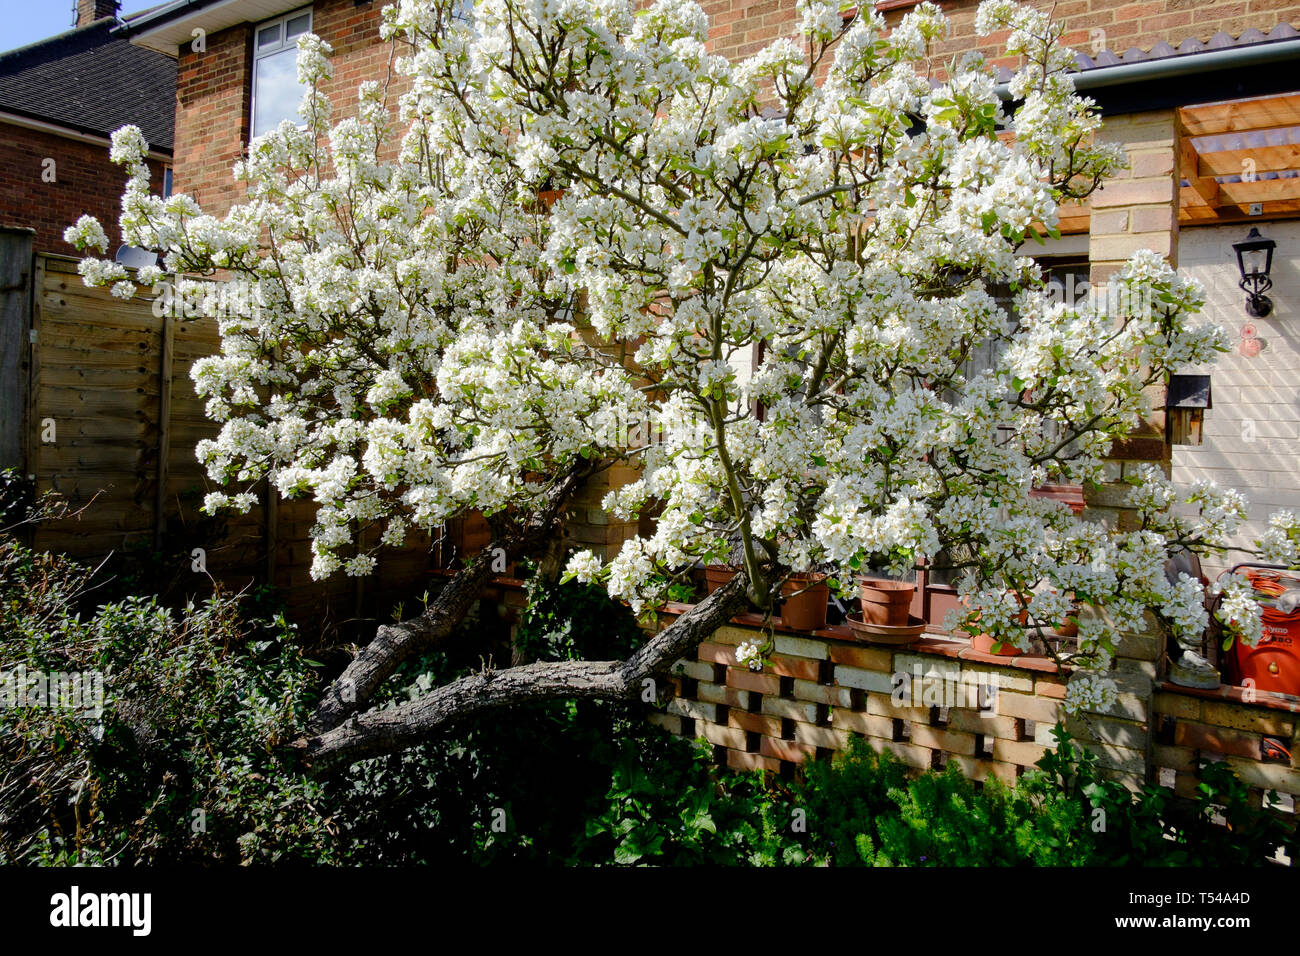 Pear tree in blossom in suburban London garden. - Stock Image